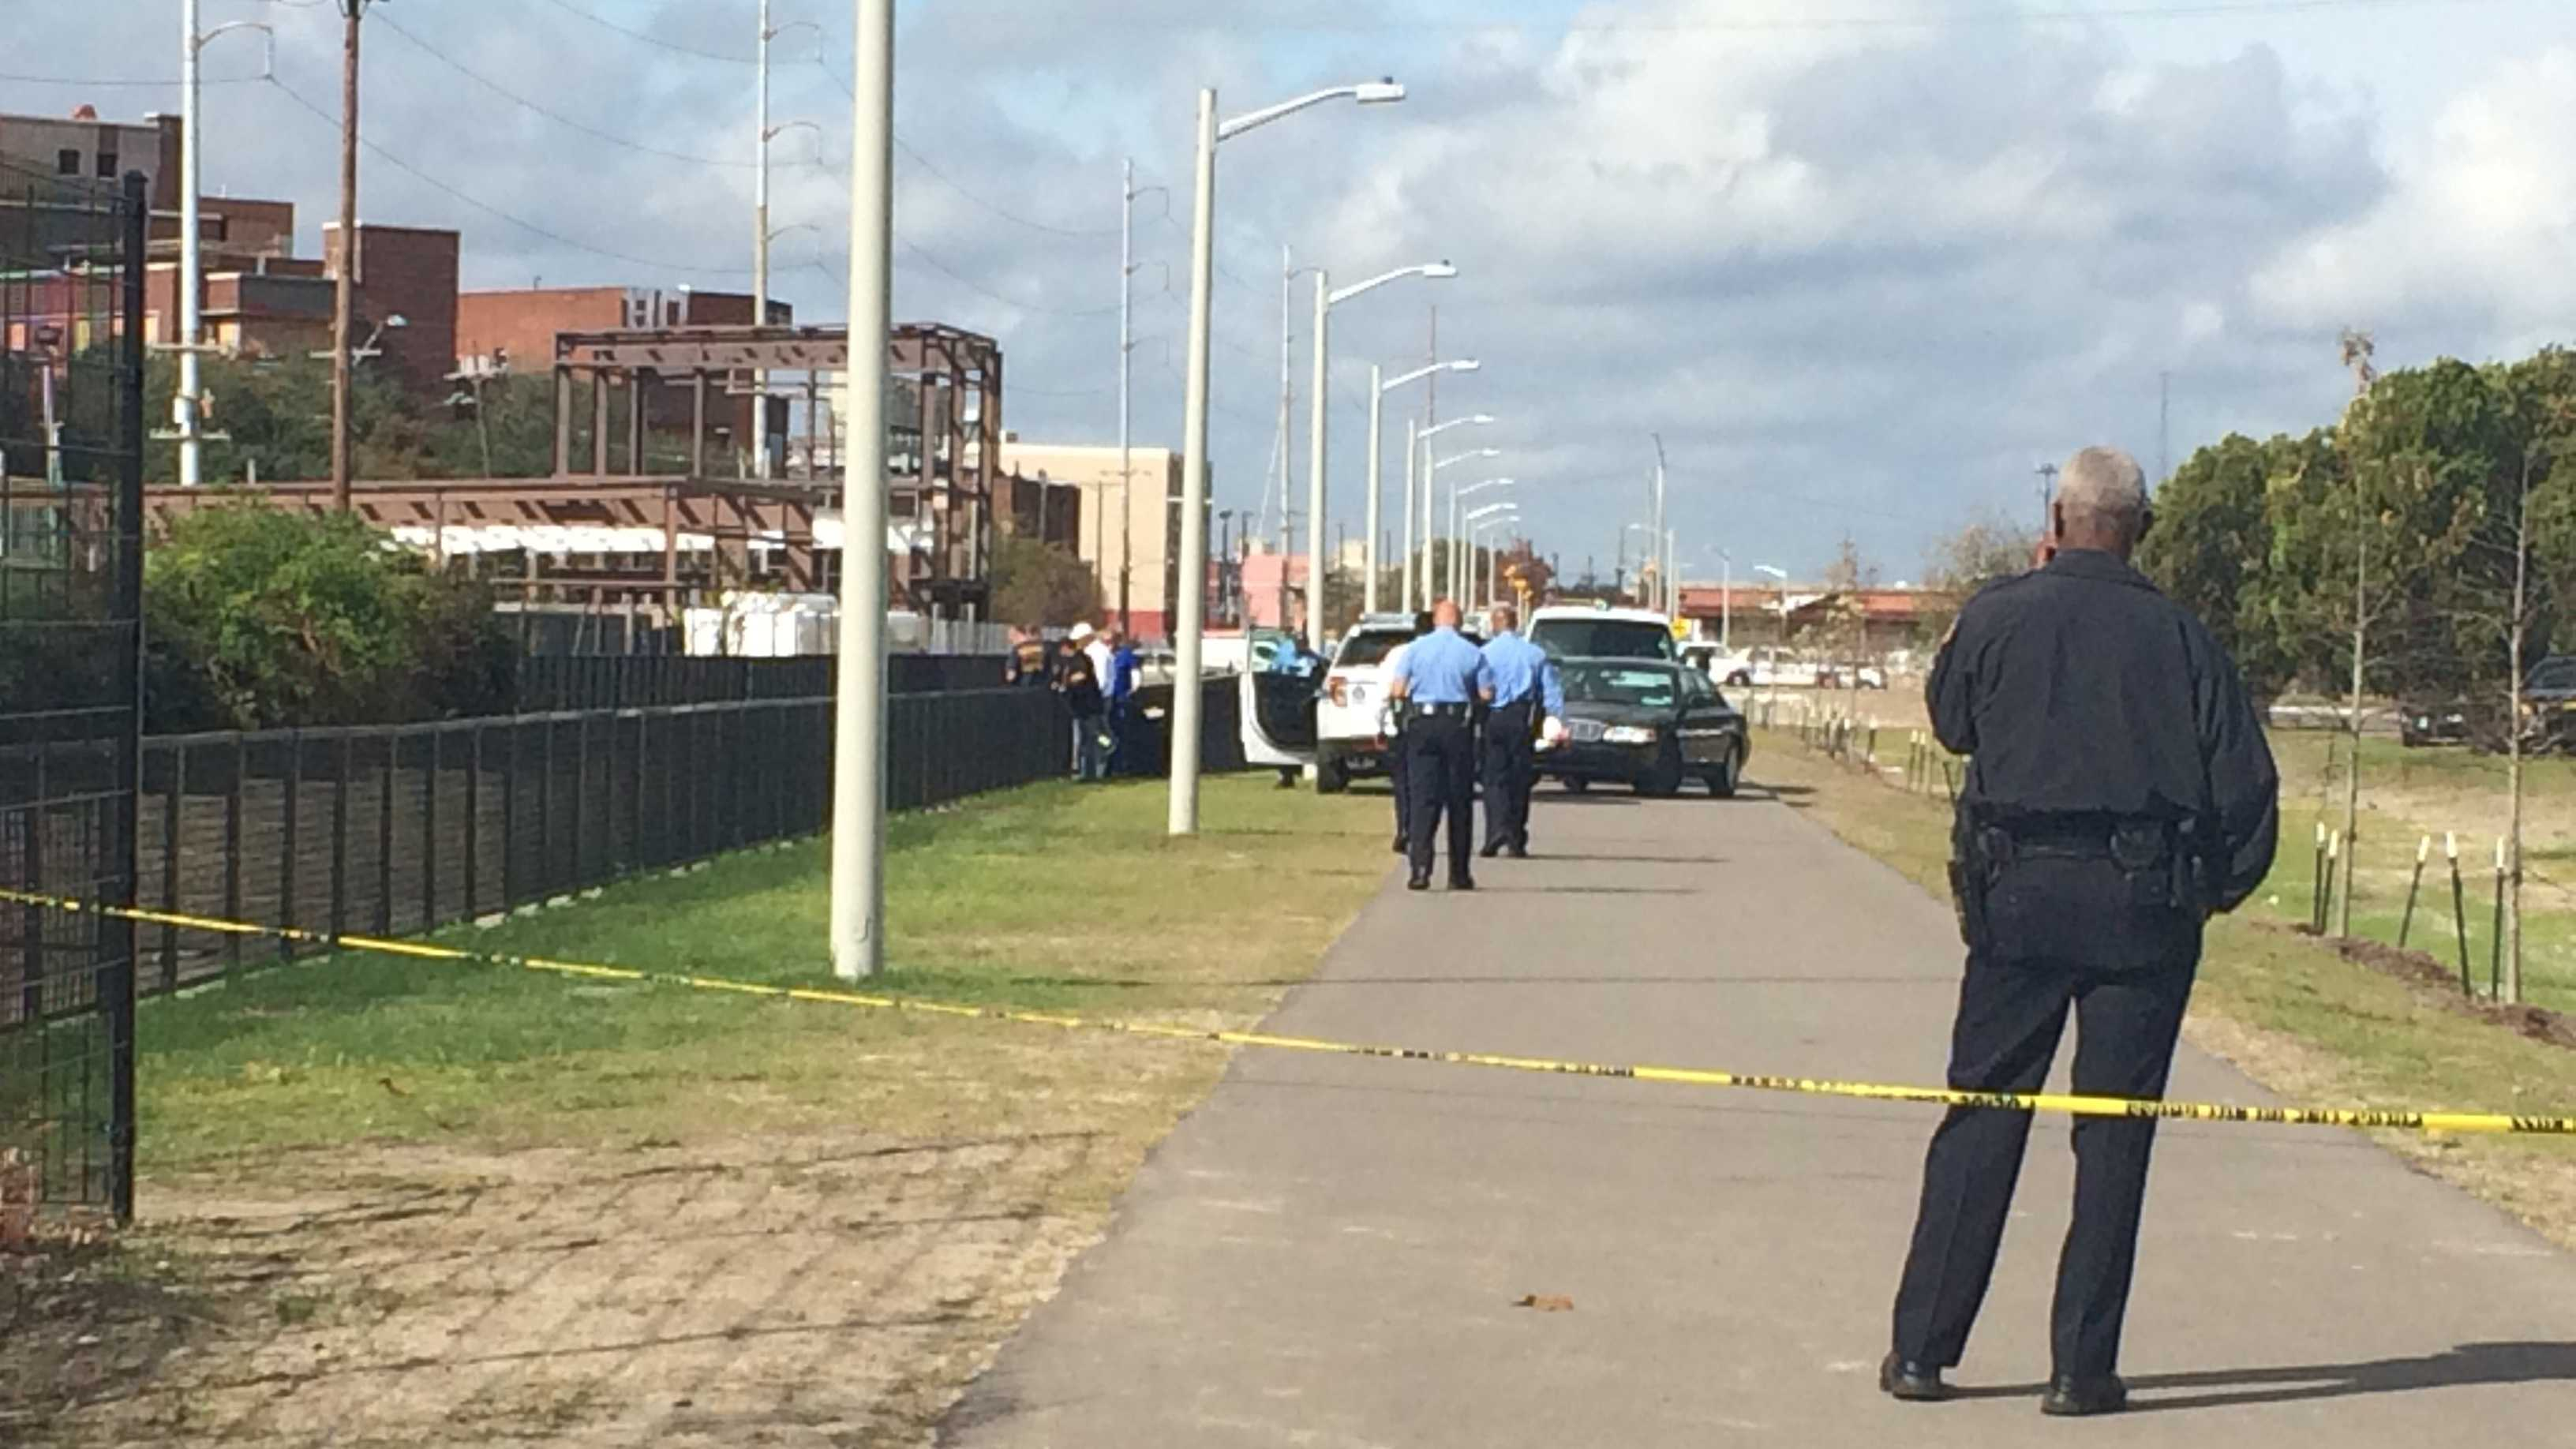 Body pulled from canal